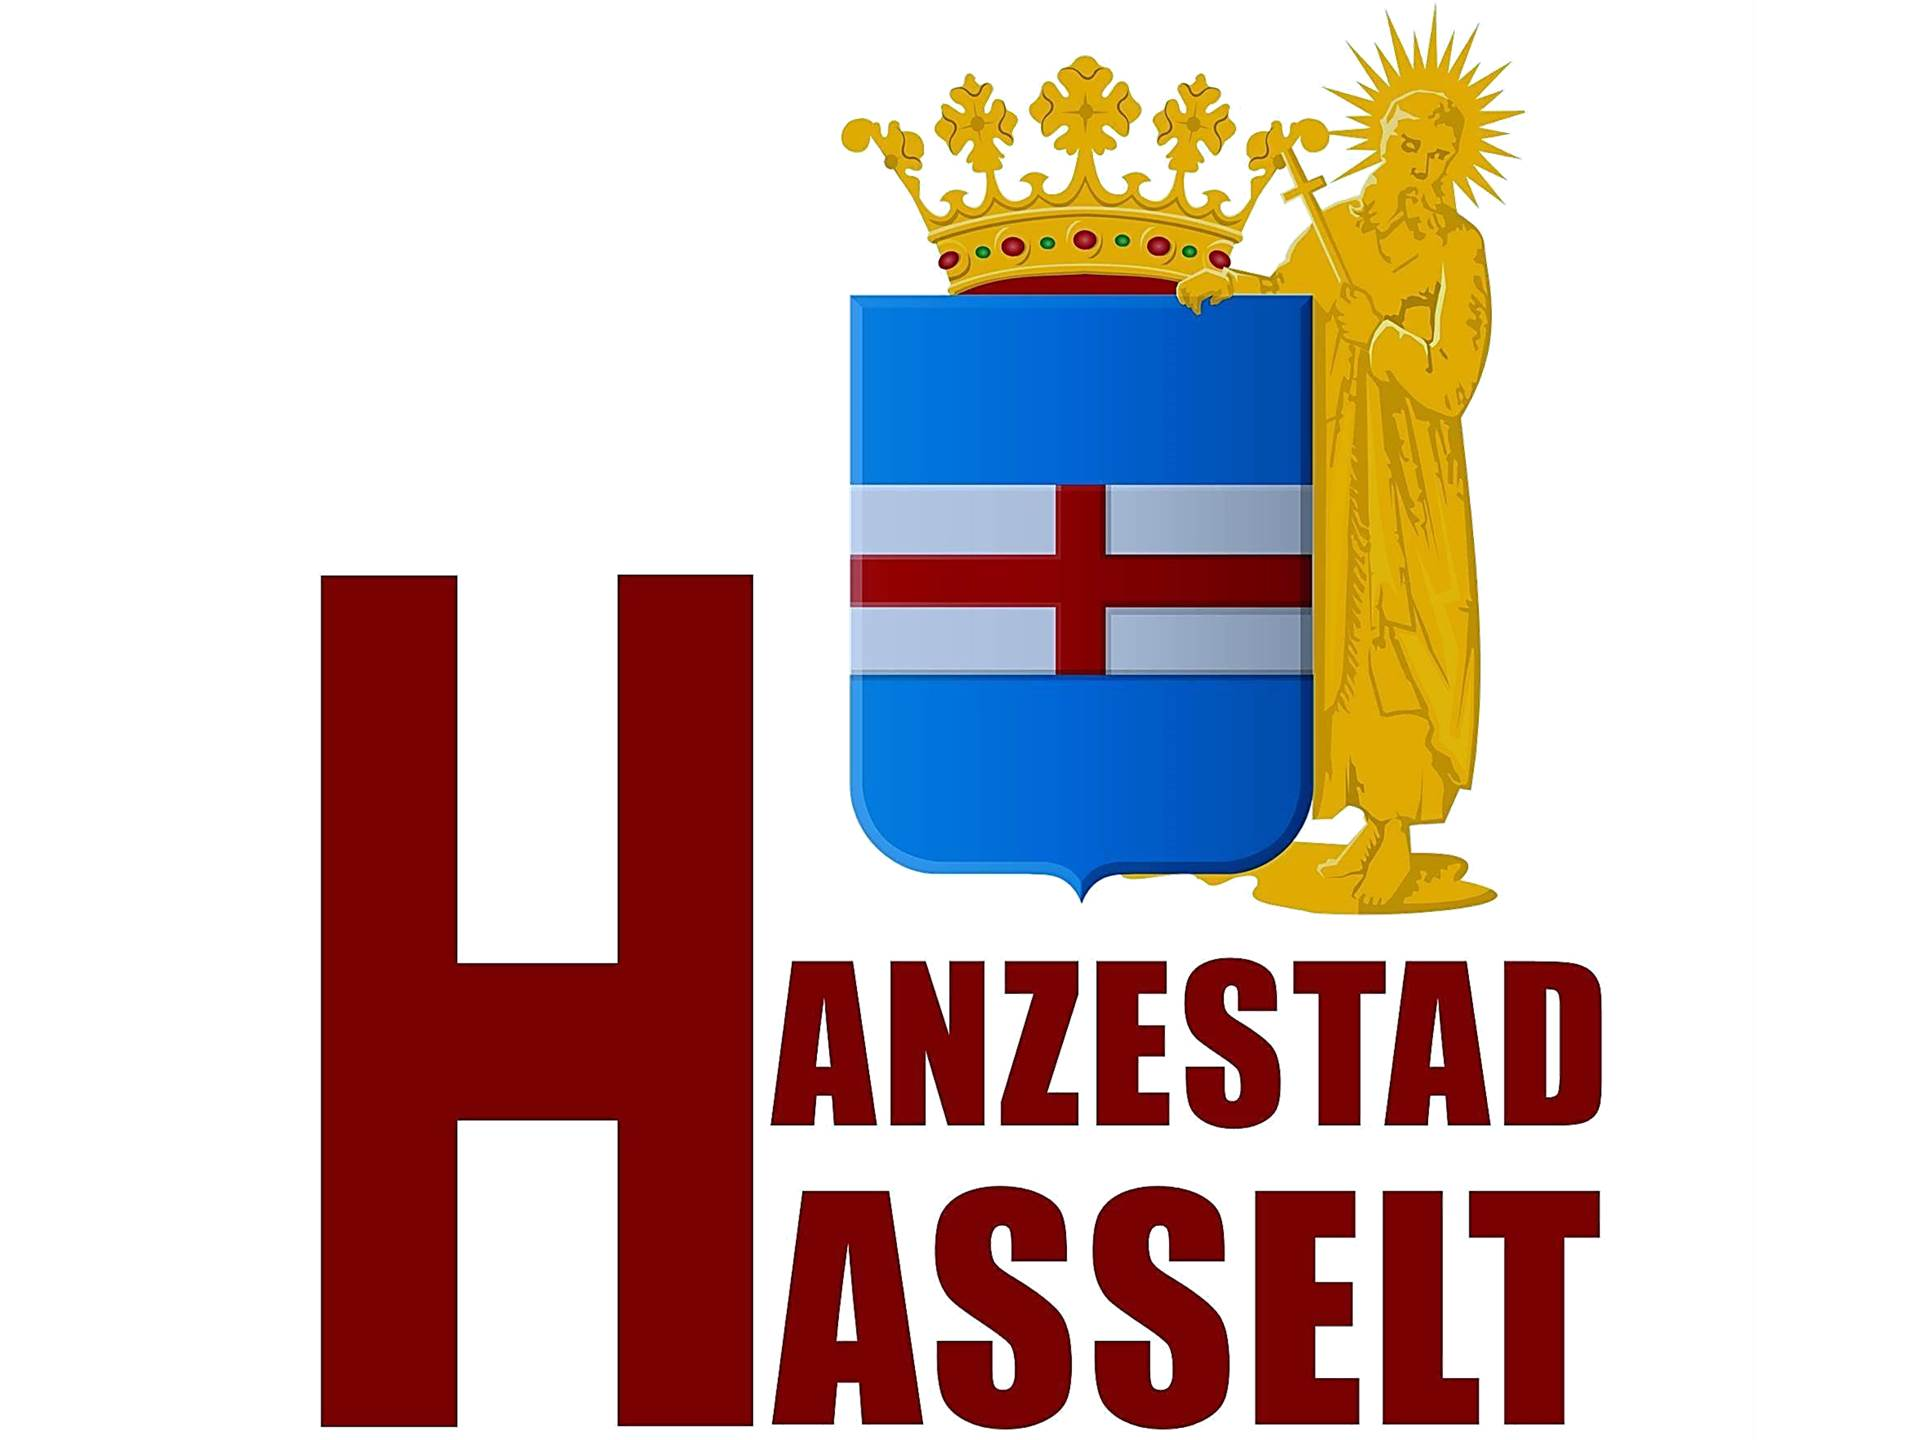 Hanzestad Hasselt Marketing logo